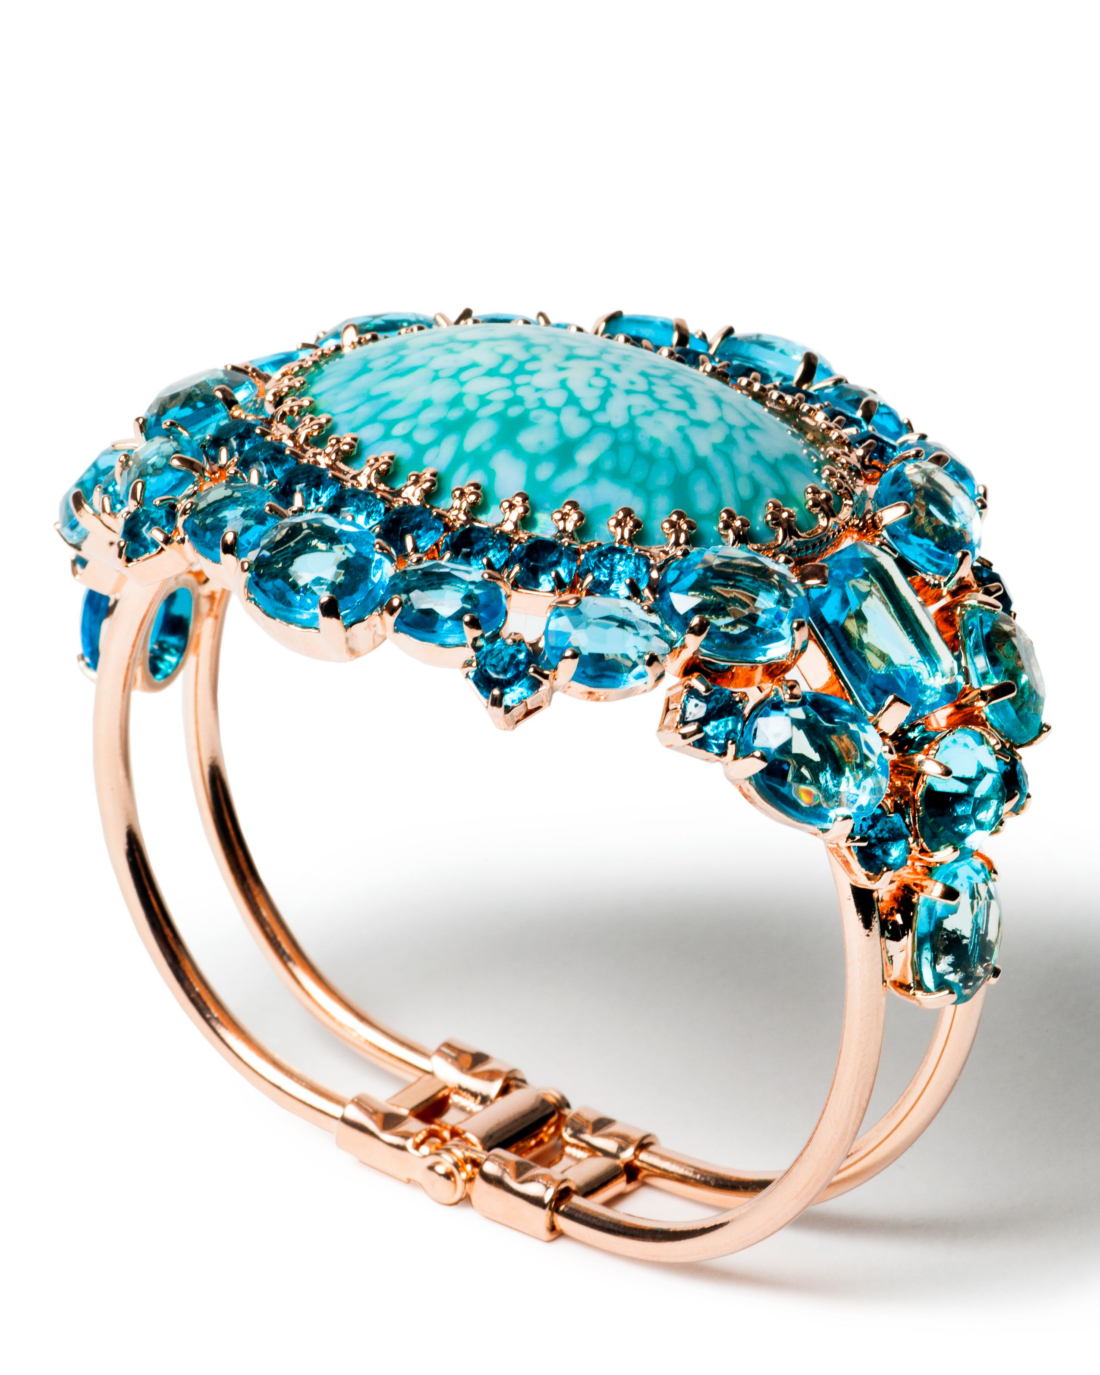 Vintage Rose Gold and Turquoise Blue Multi Faceted Stone Cuff Bracelet,